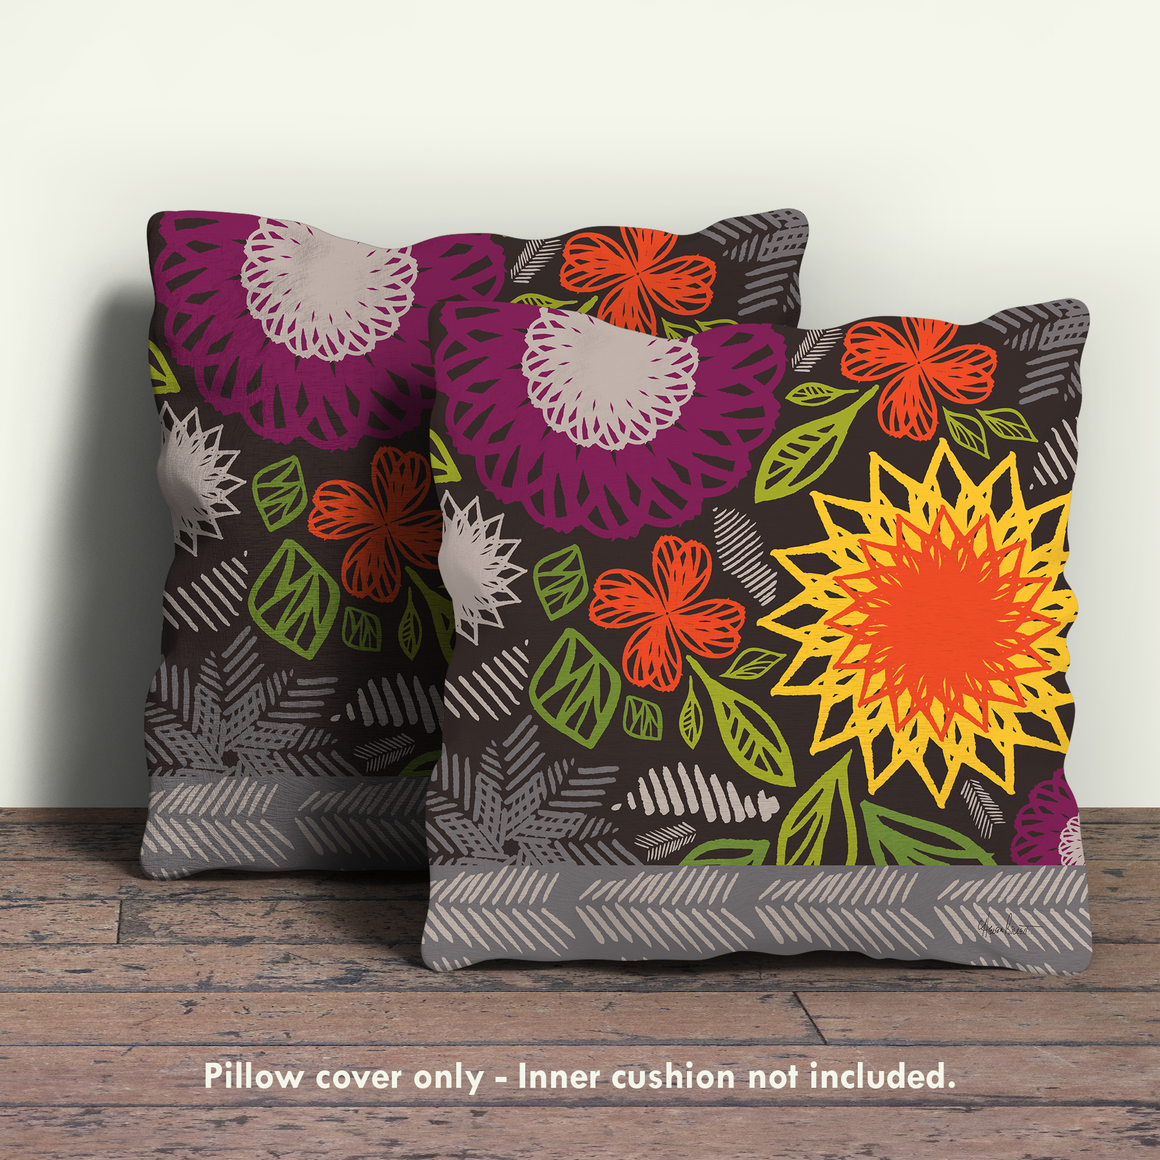 Spice Market Pillow Cover